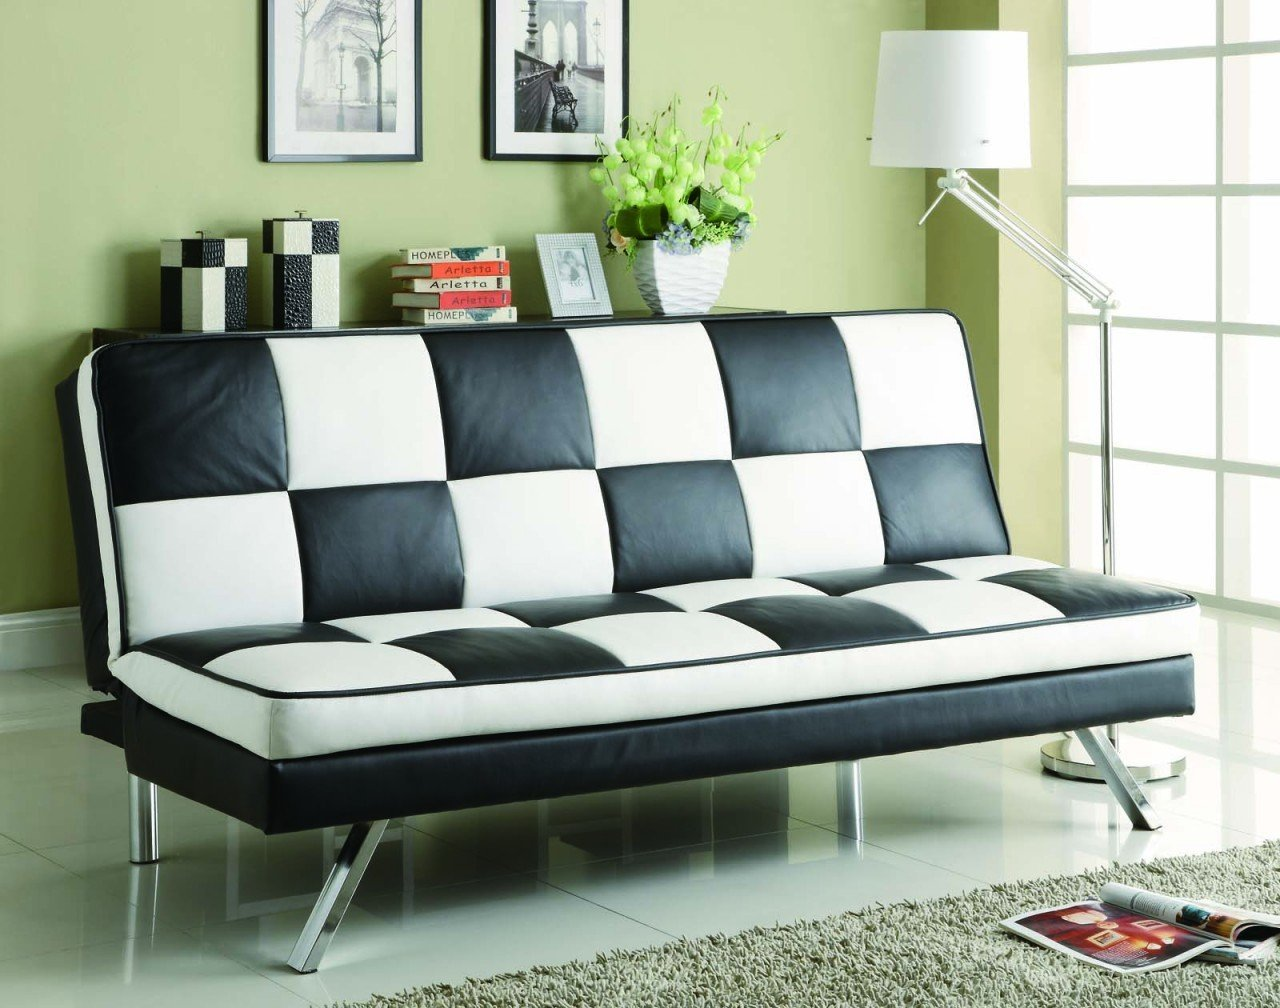 Sleeper Sofa - Coaster Sleeper Sofa Bed